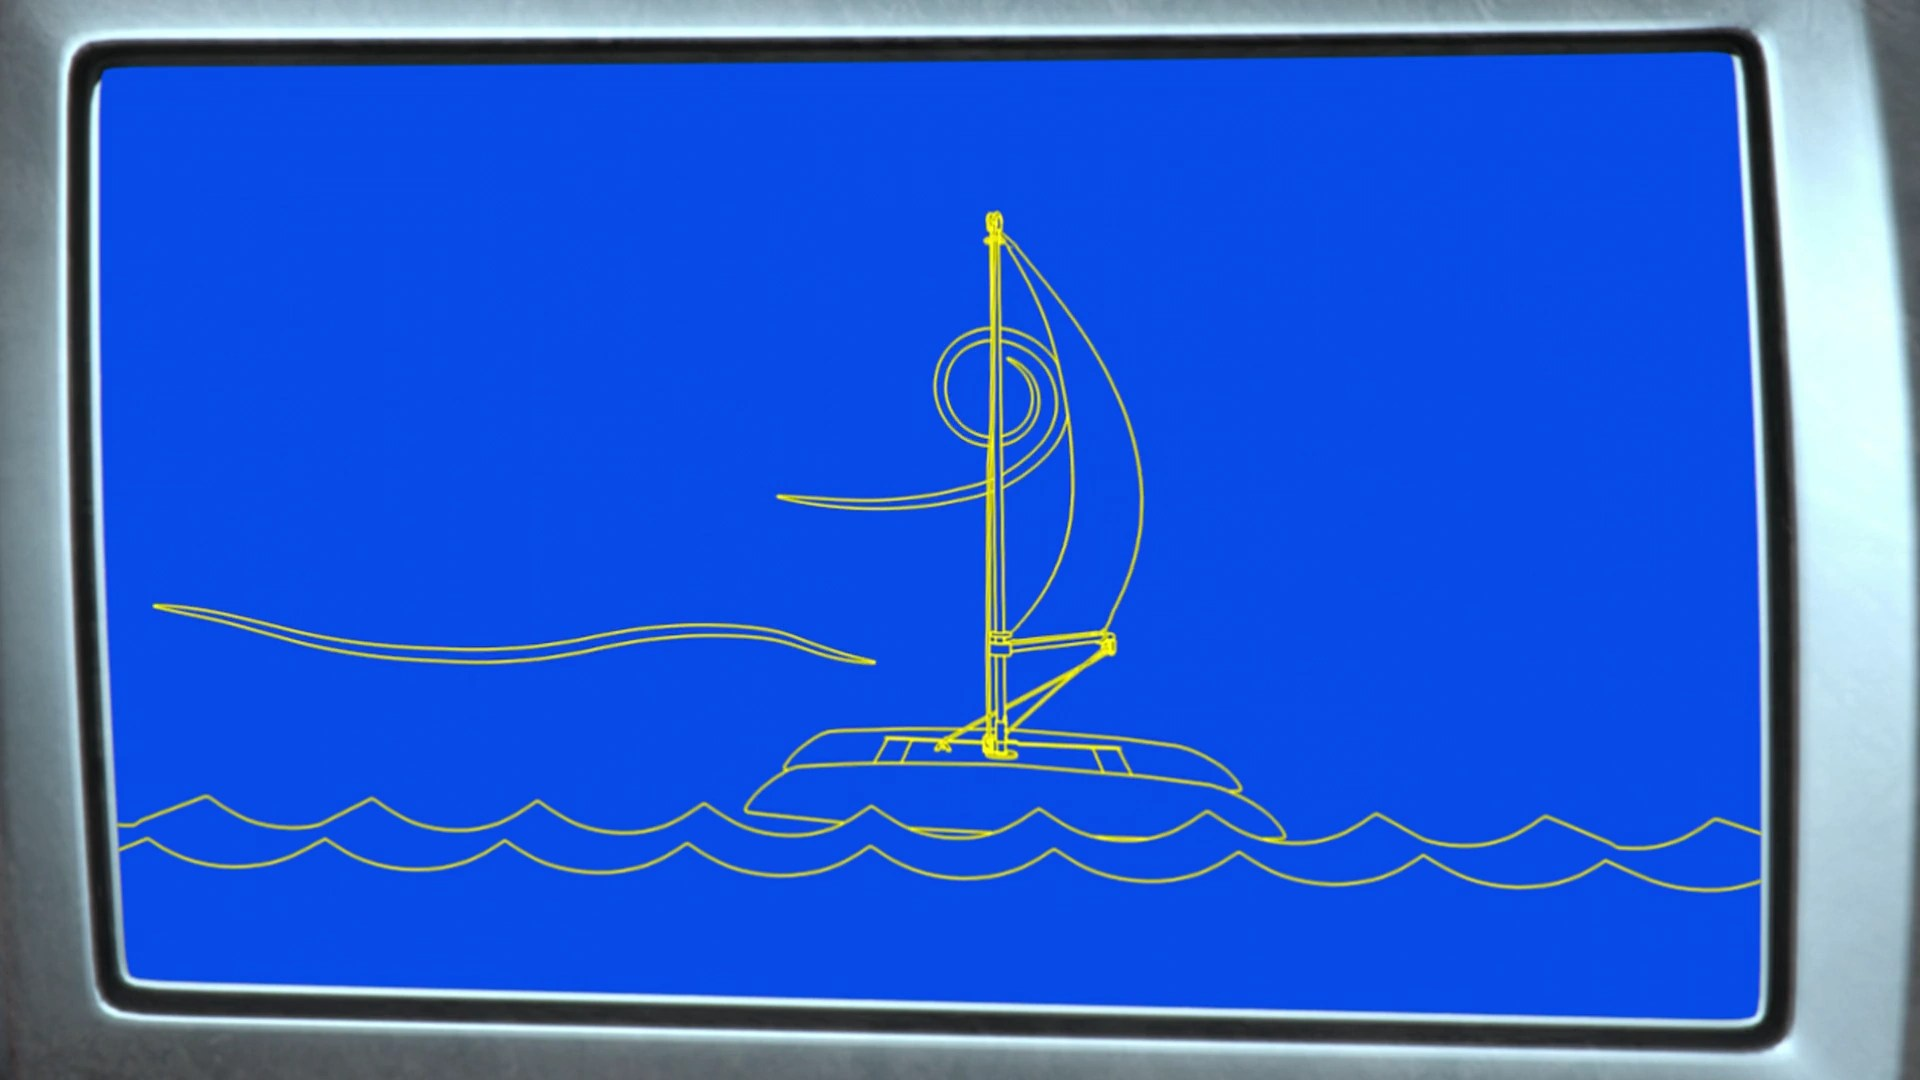 medium resolution of s3e17 diagram of wind pushing a sailboat png